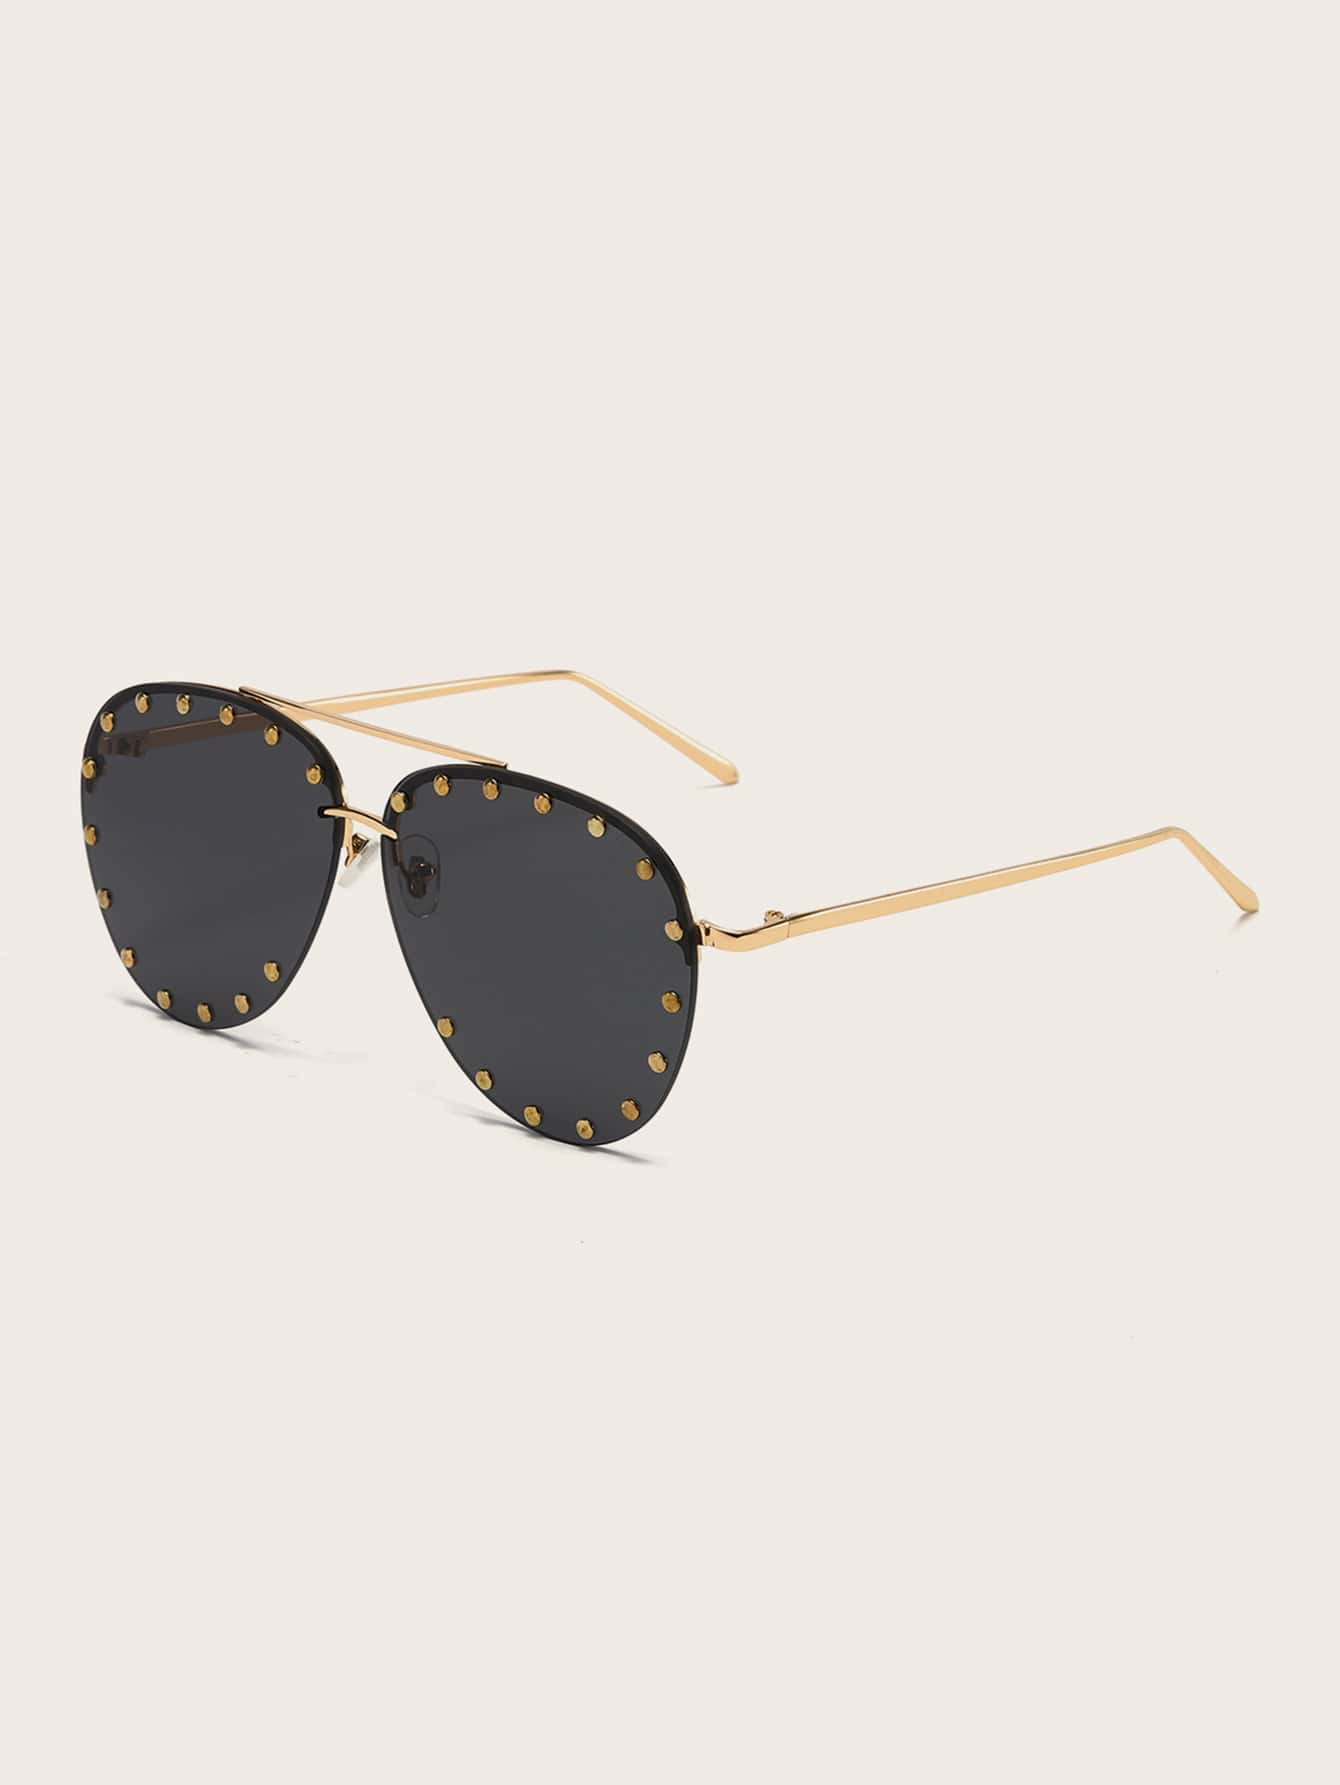 Studded Decor Aviator Sunglasses